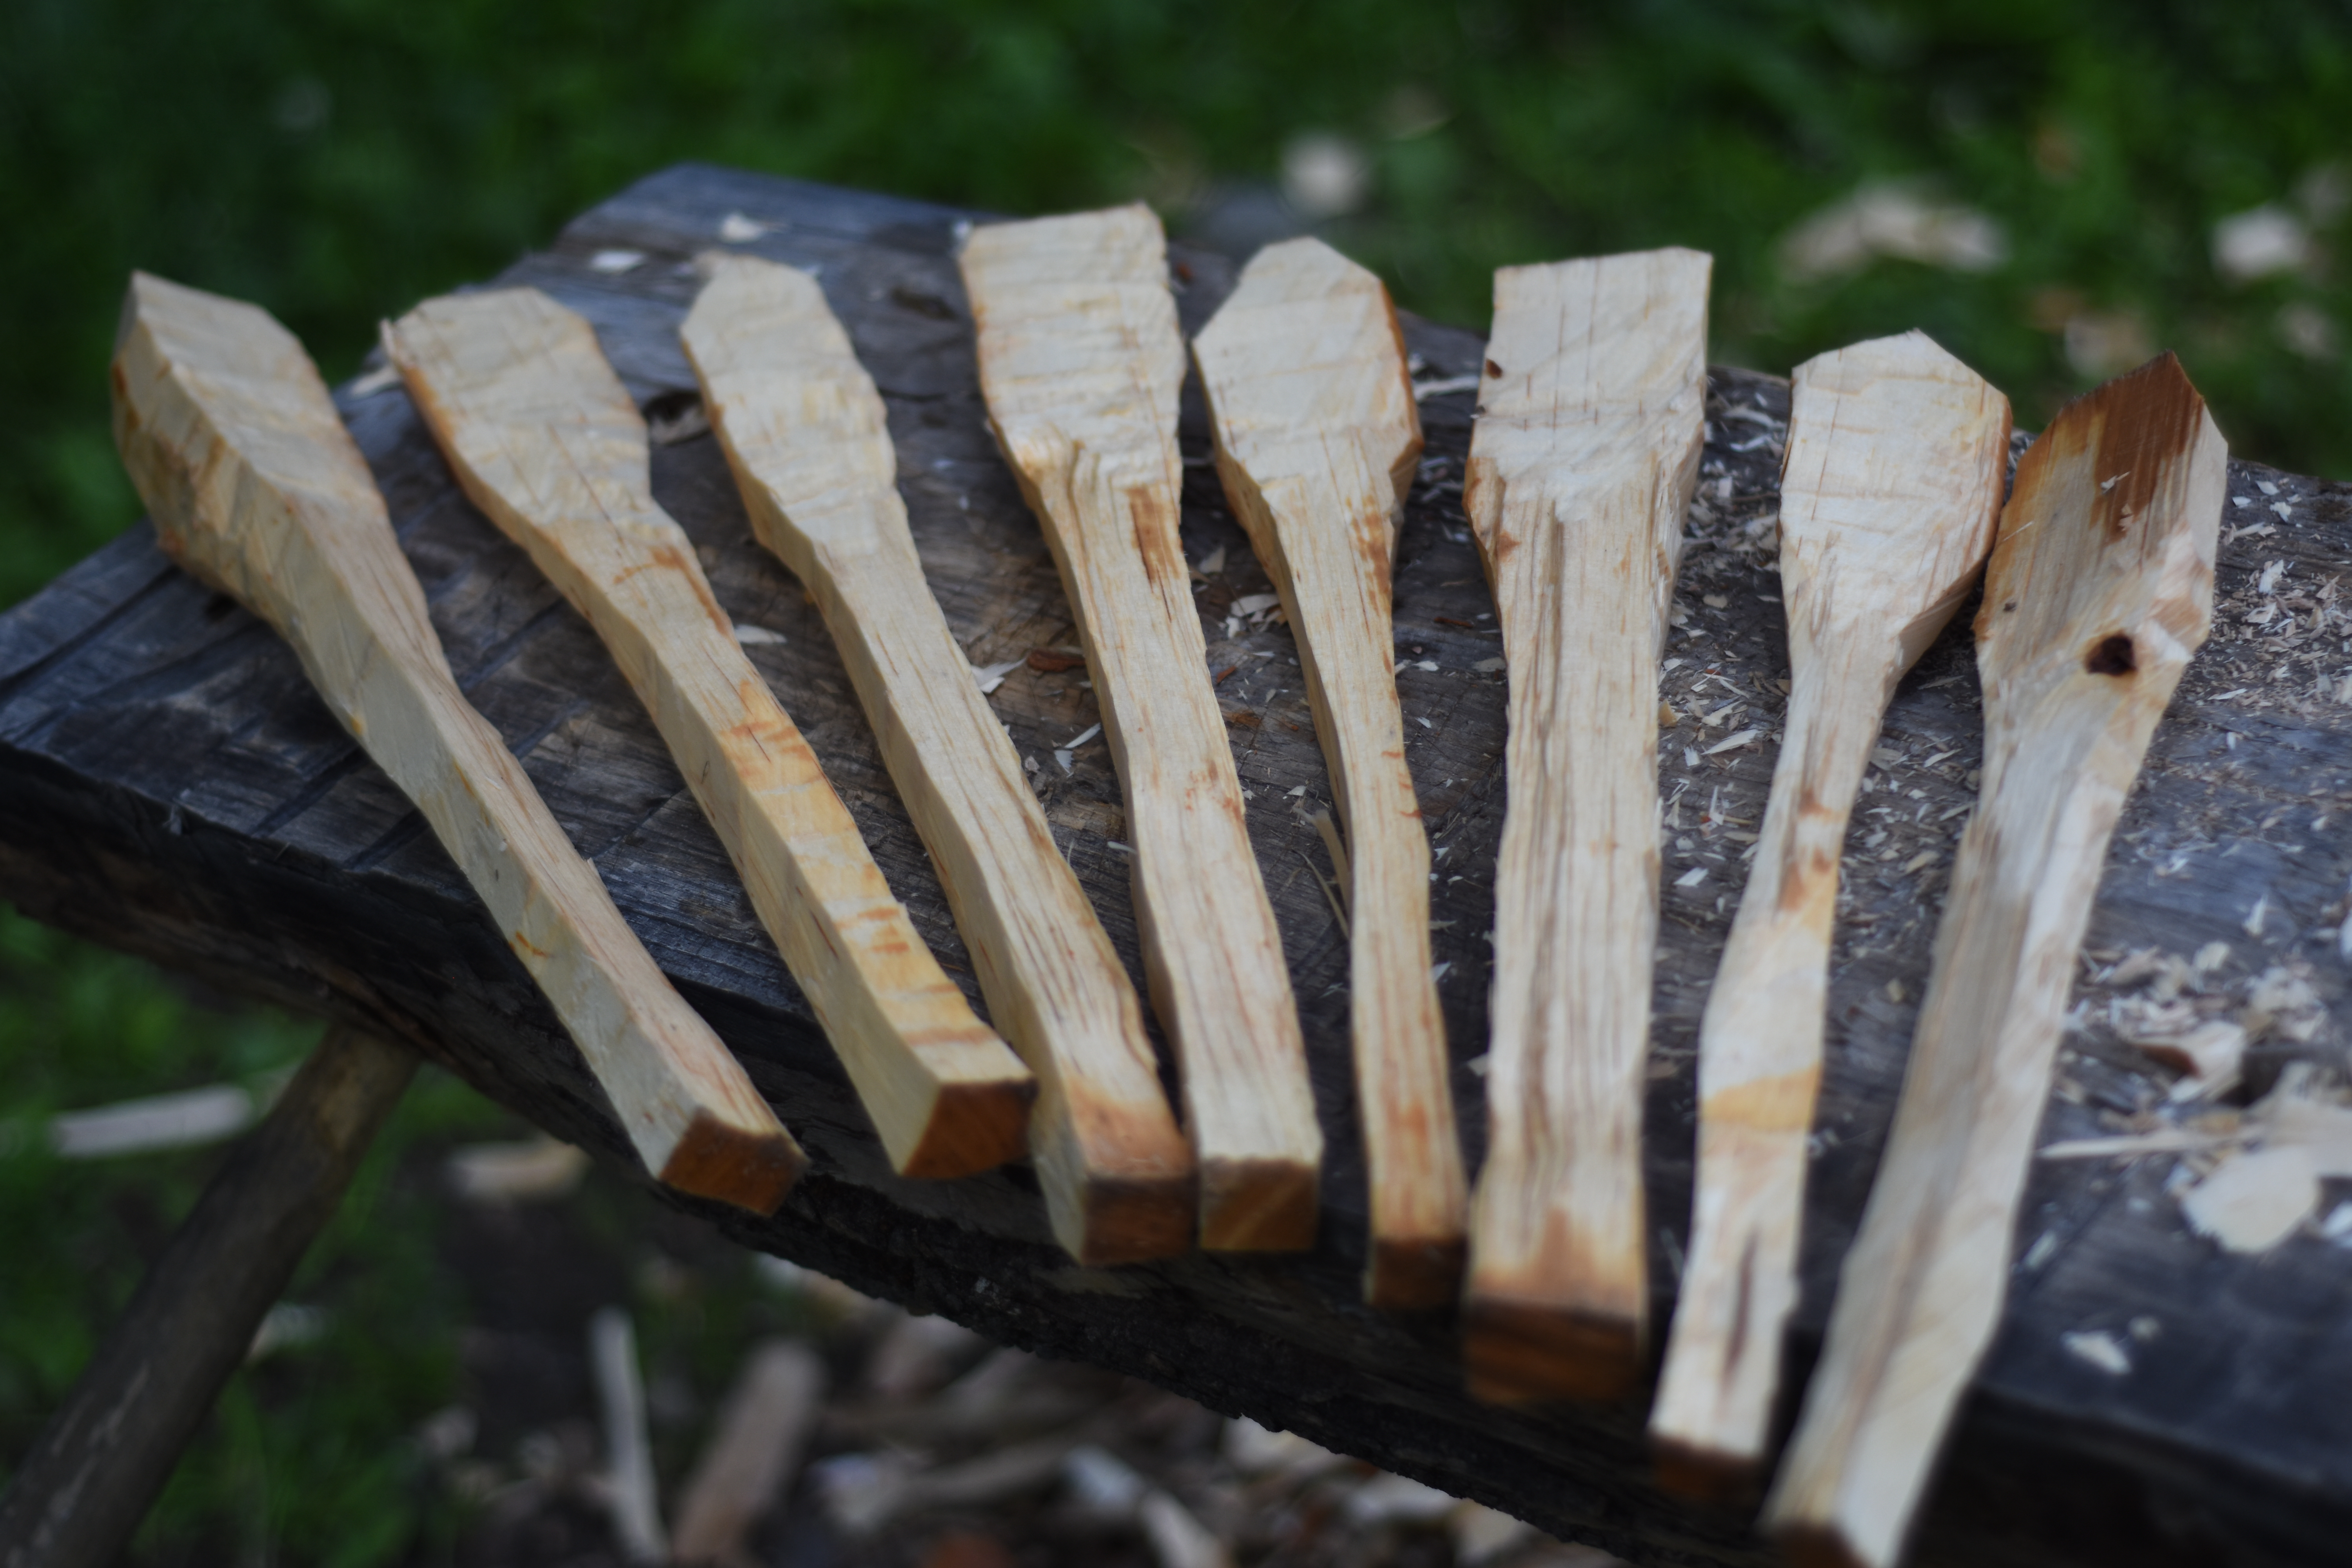 spoonderlust | Hand-made wooden spoons crafted using